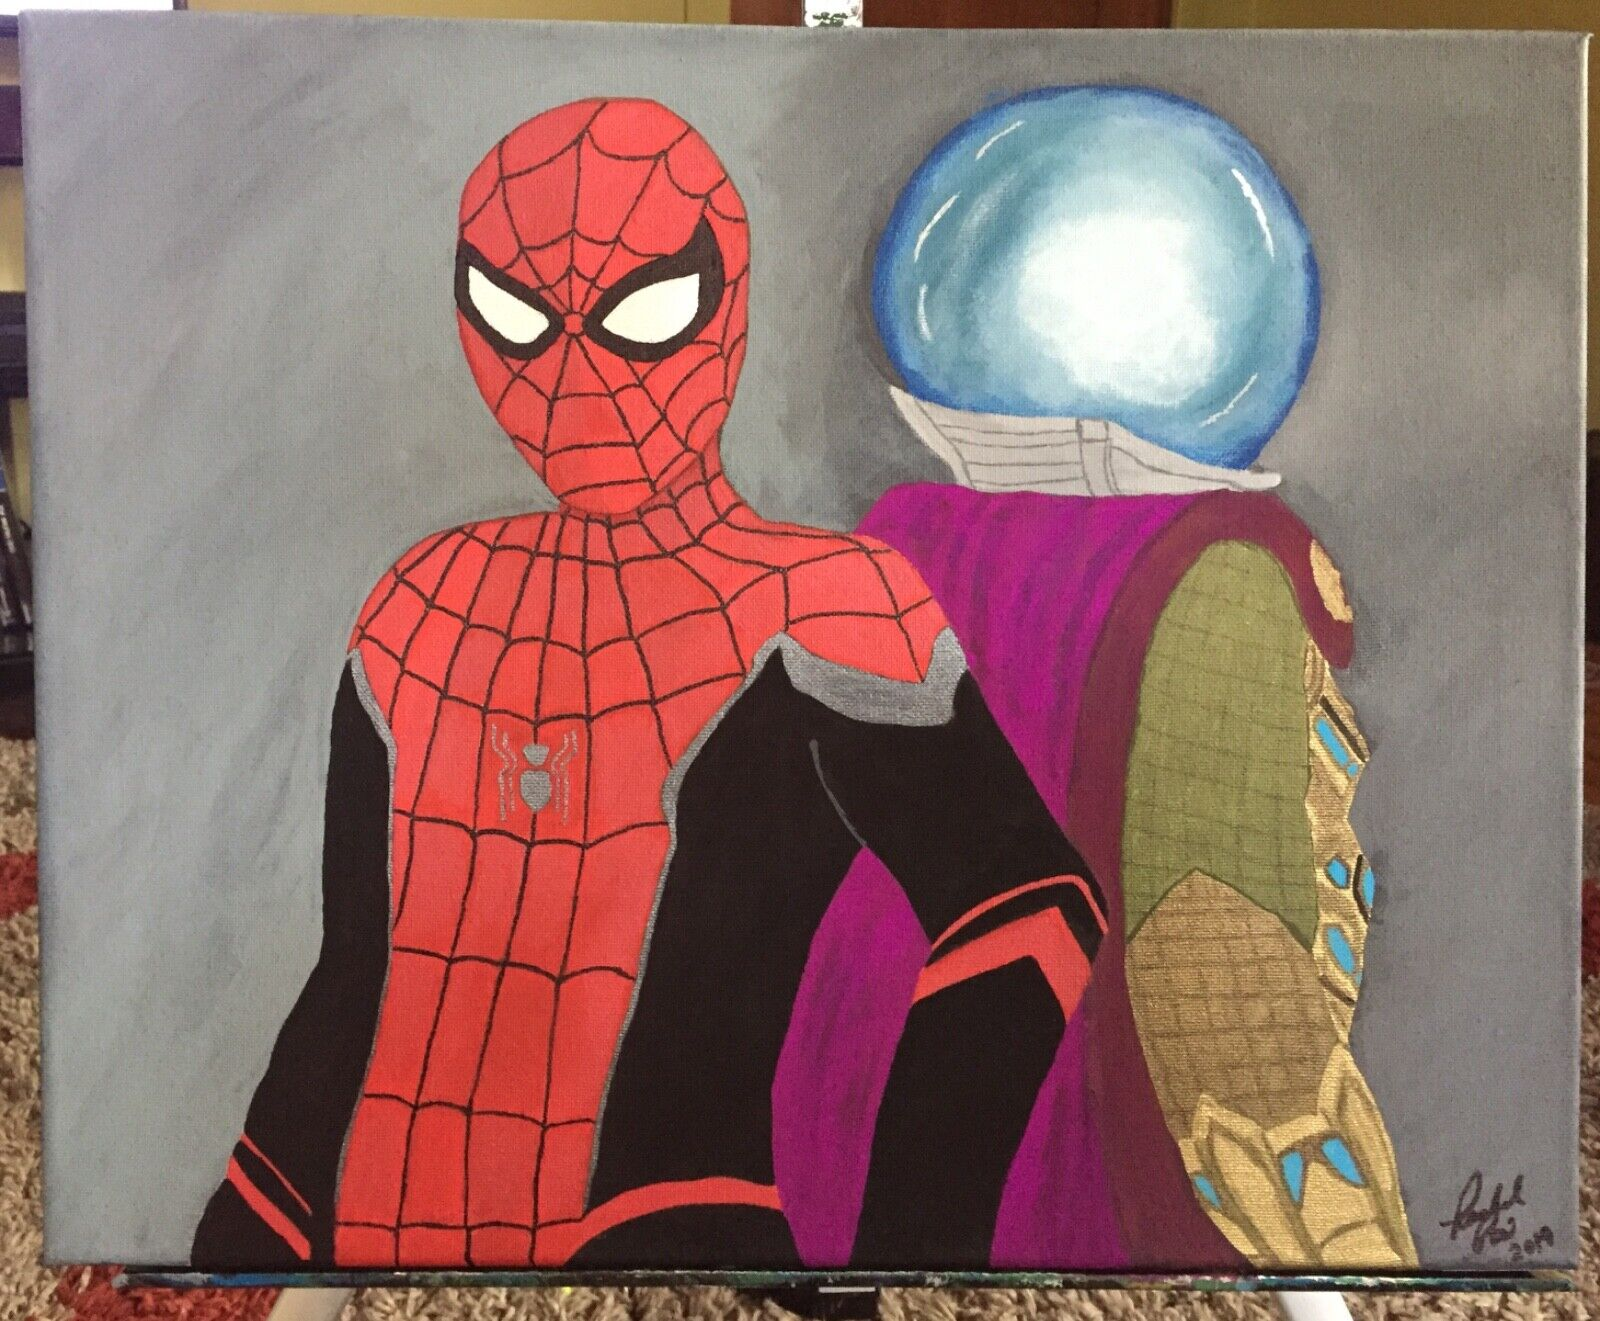 original artwork for sale by artist, Spiderman painting, fan art, comic art 1